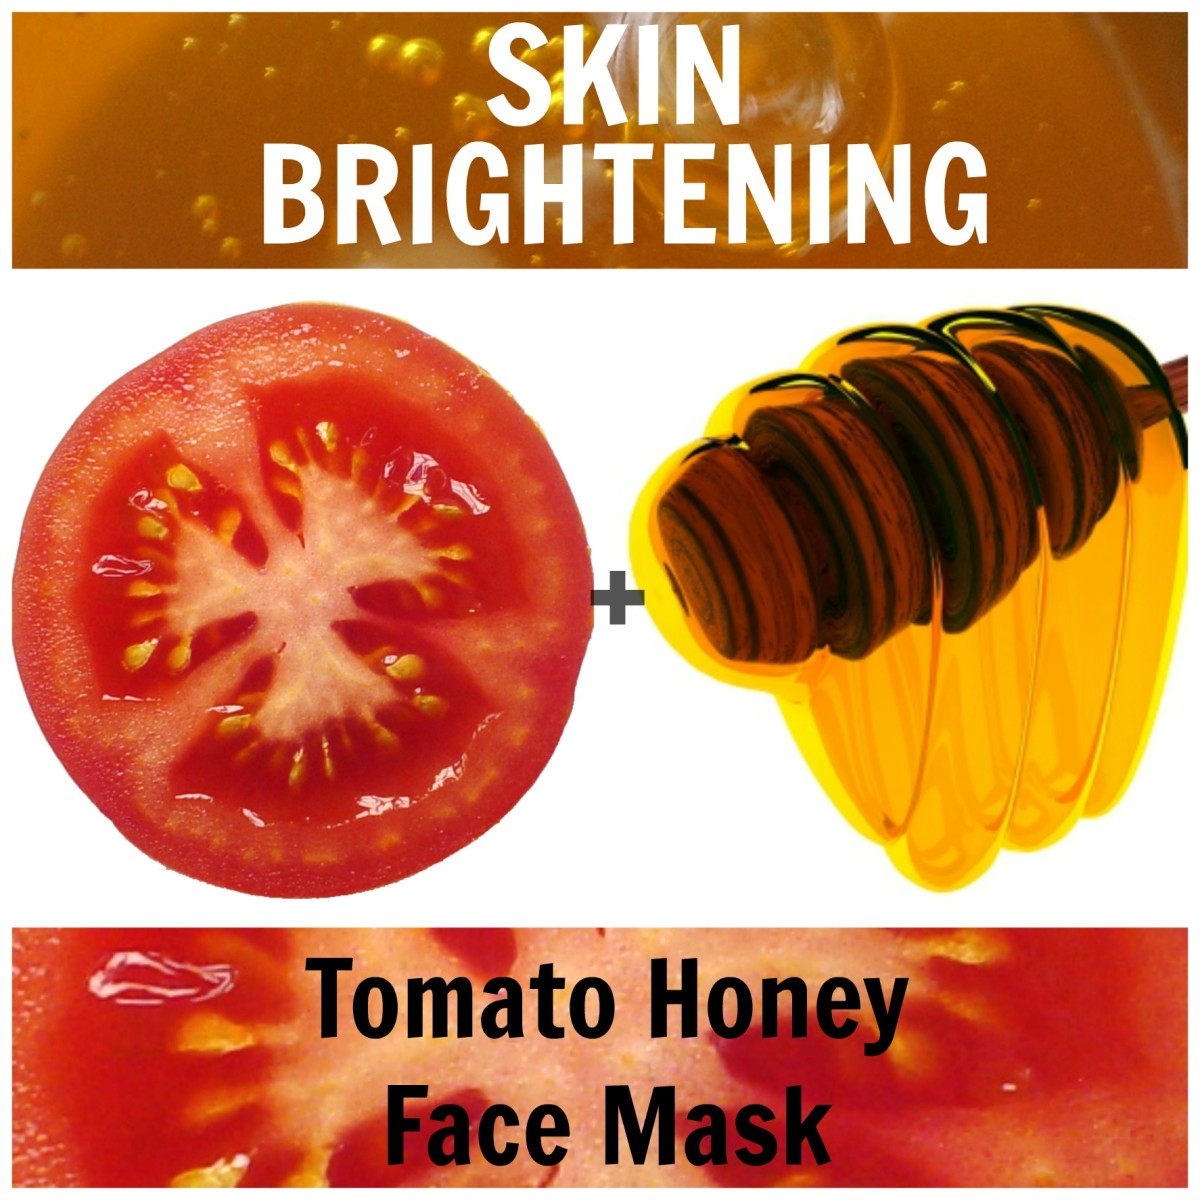 Want to brighten your skin and make it blemish free? Regularly use a nourishing tomato honey face mask.